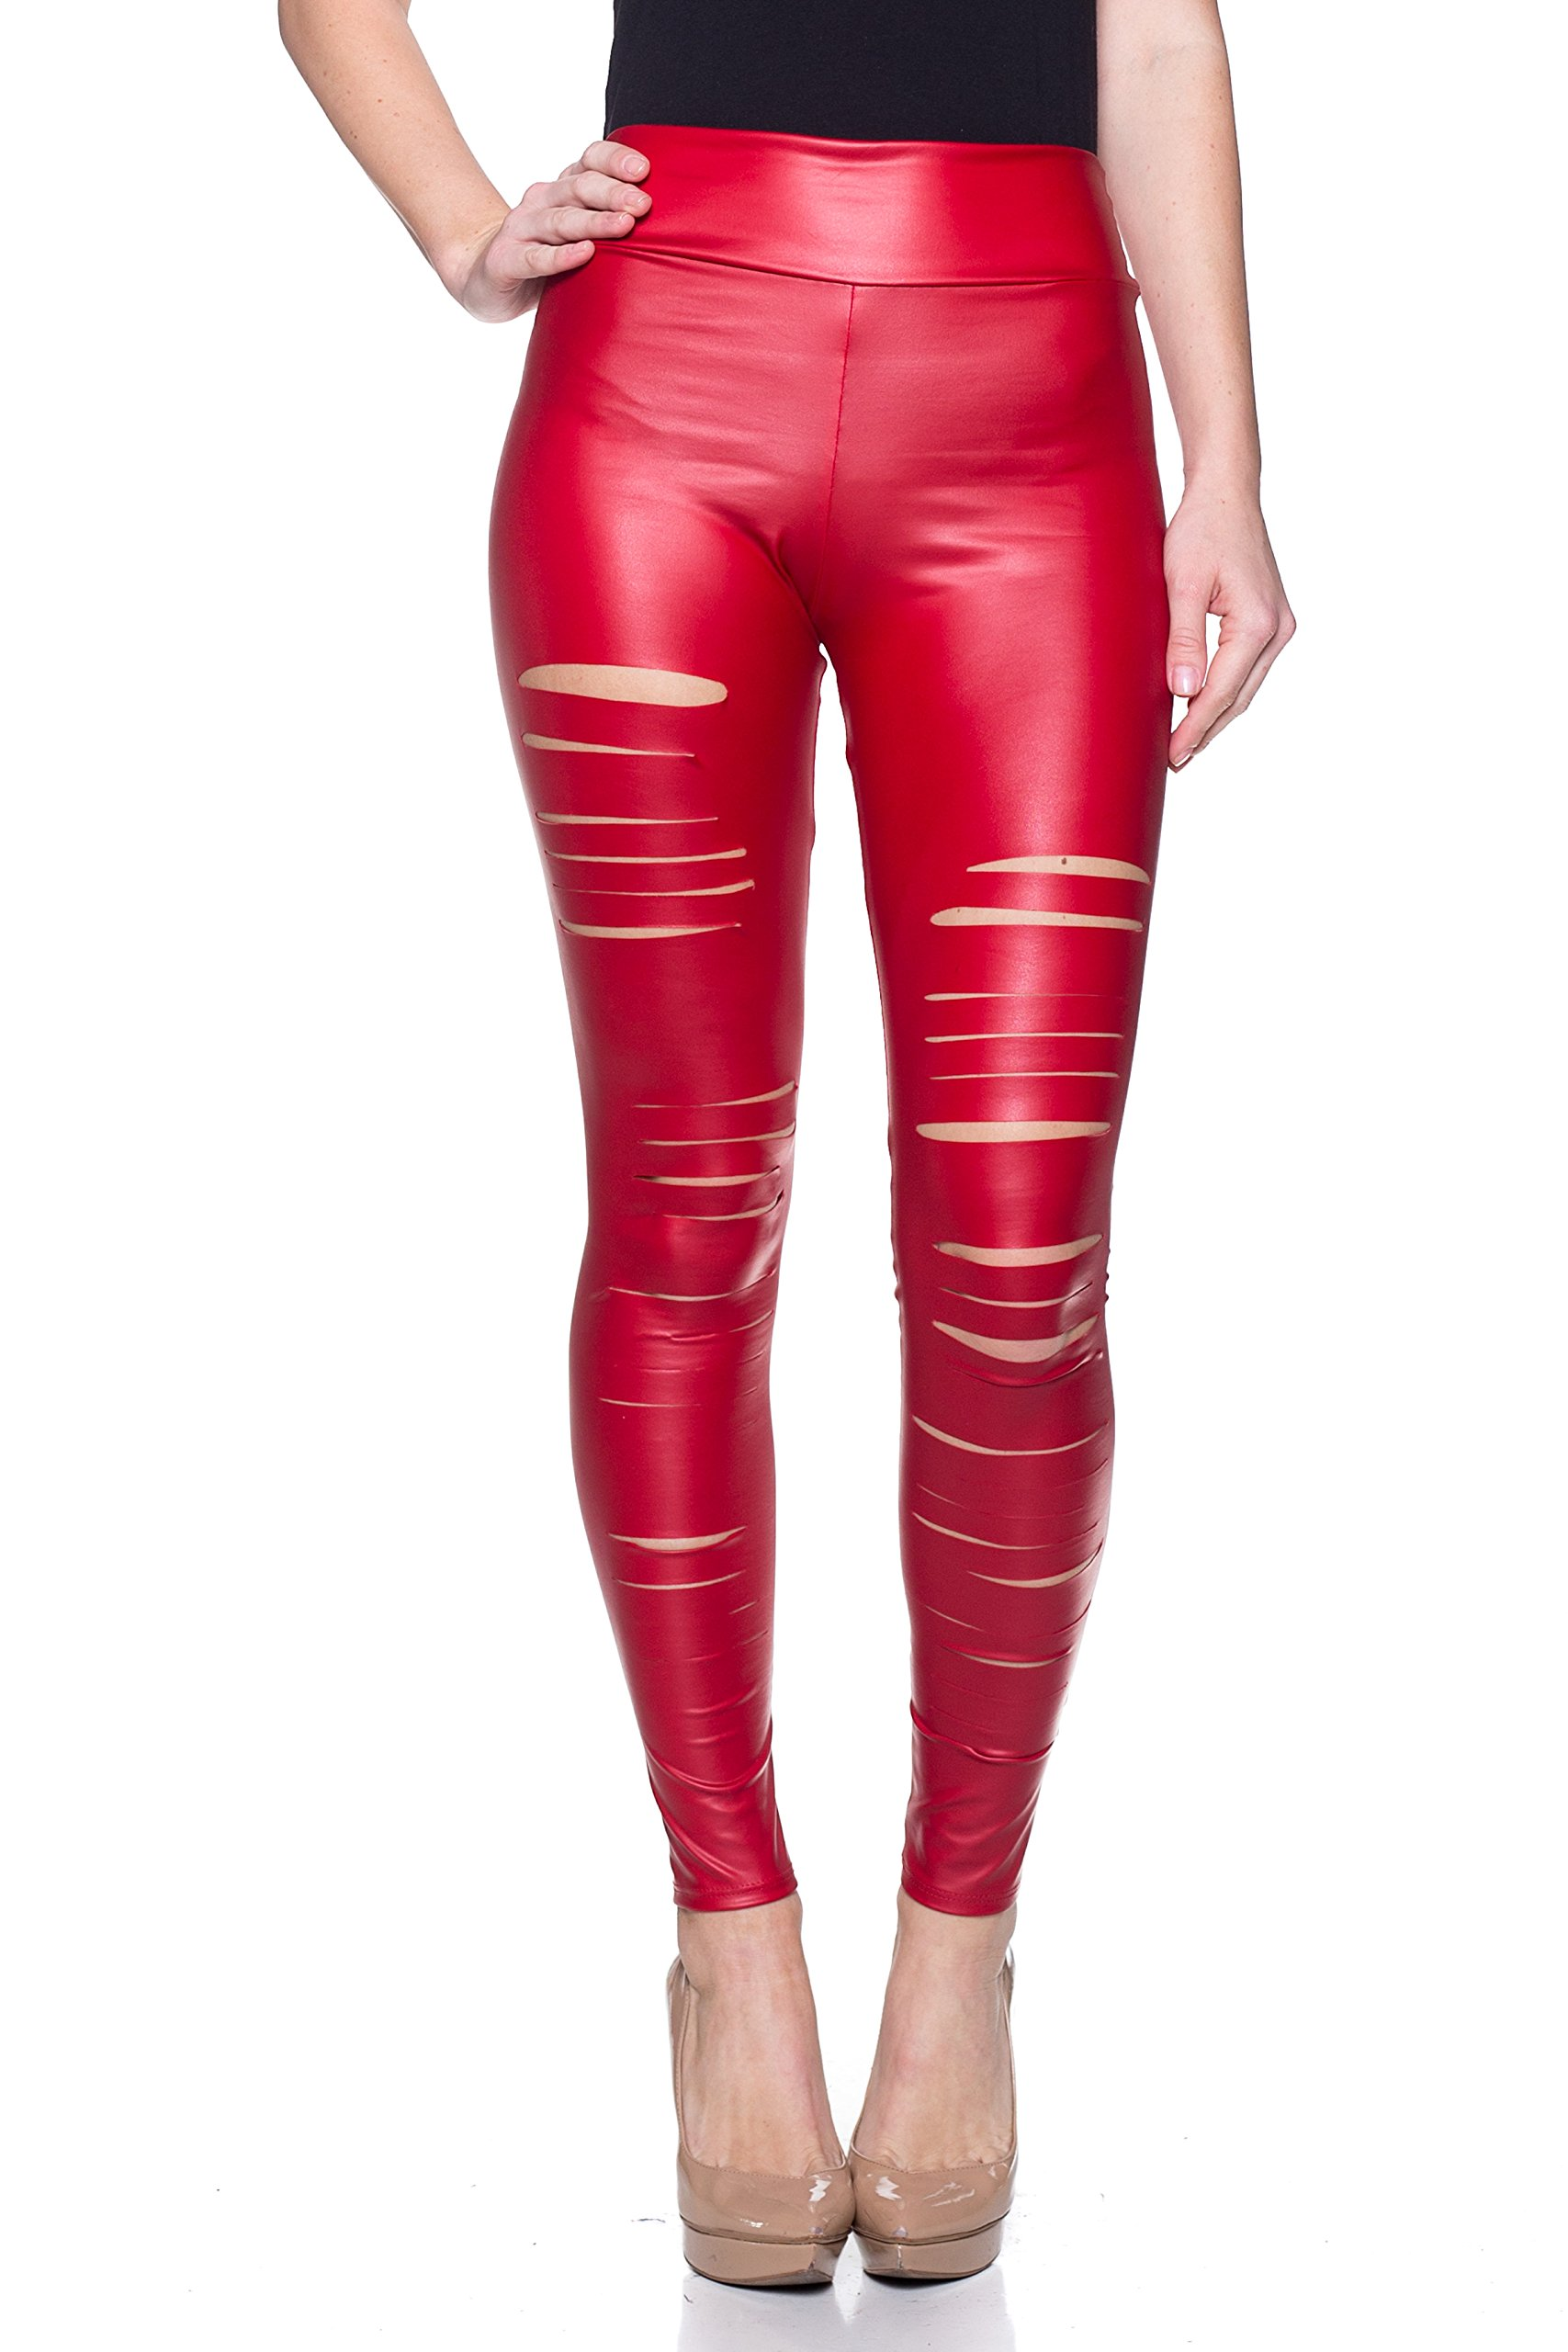 J2 LOVE Women's Junior Plus Faux Leather Ripped Legging, 1X, Red